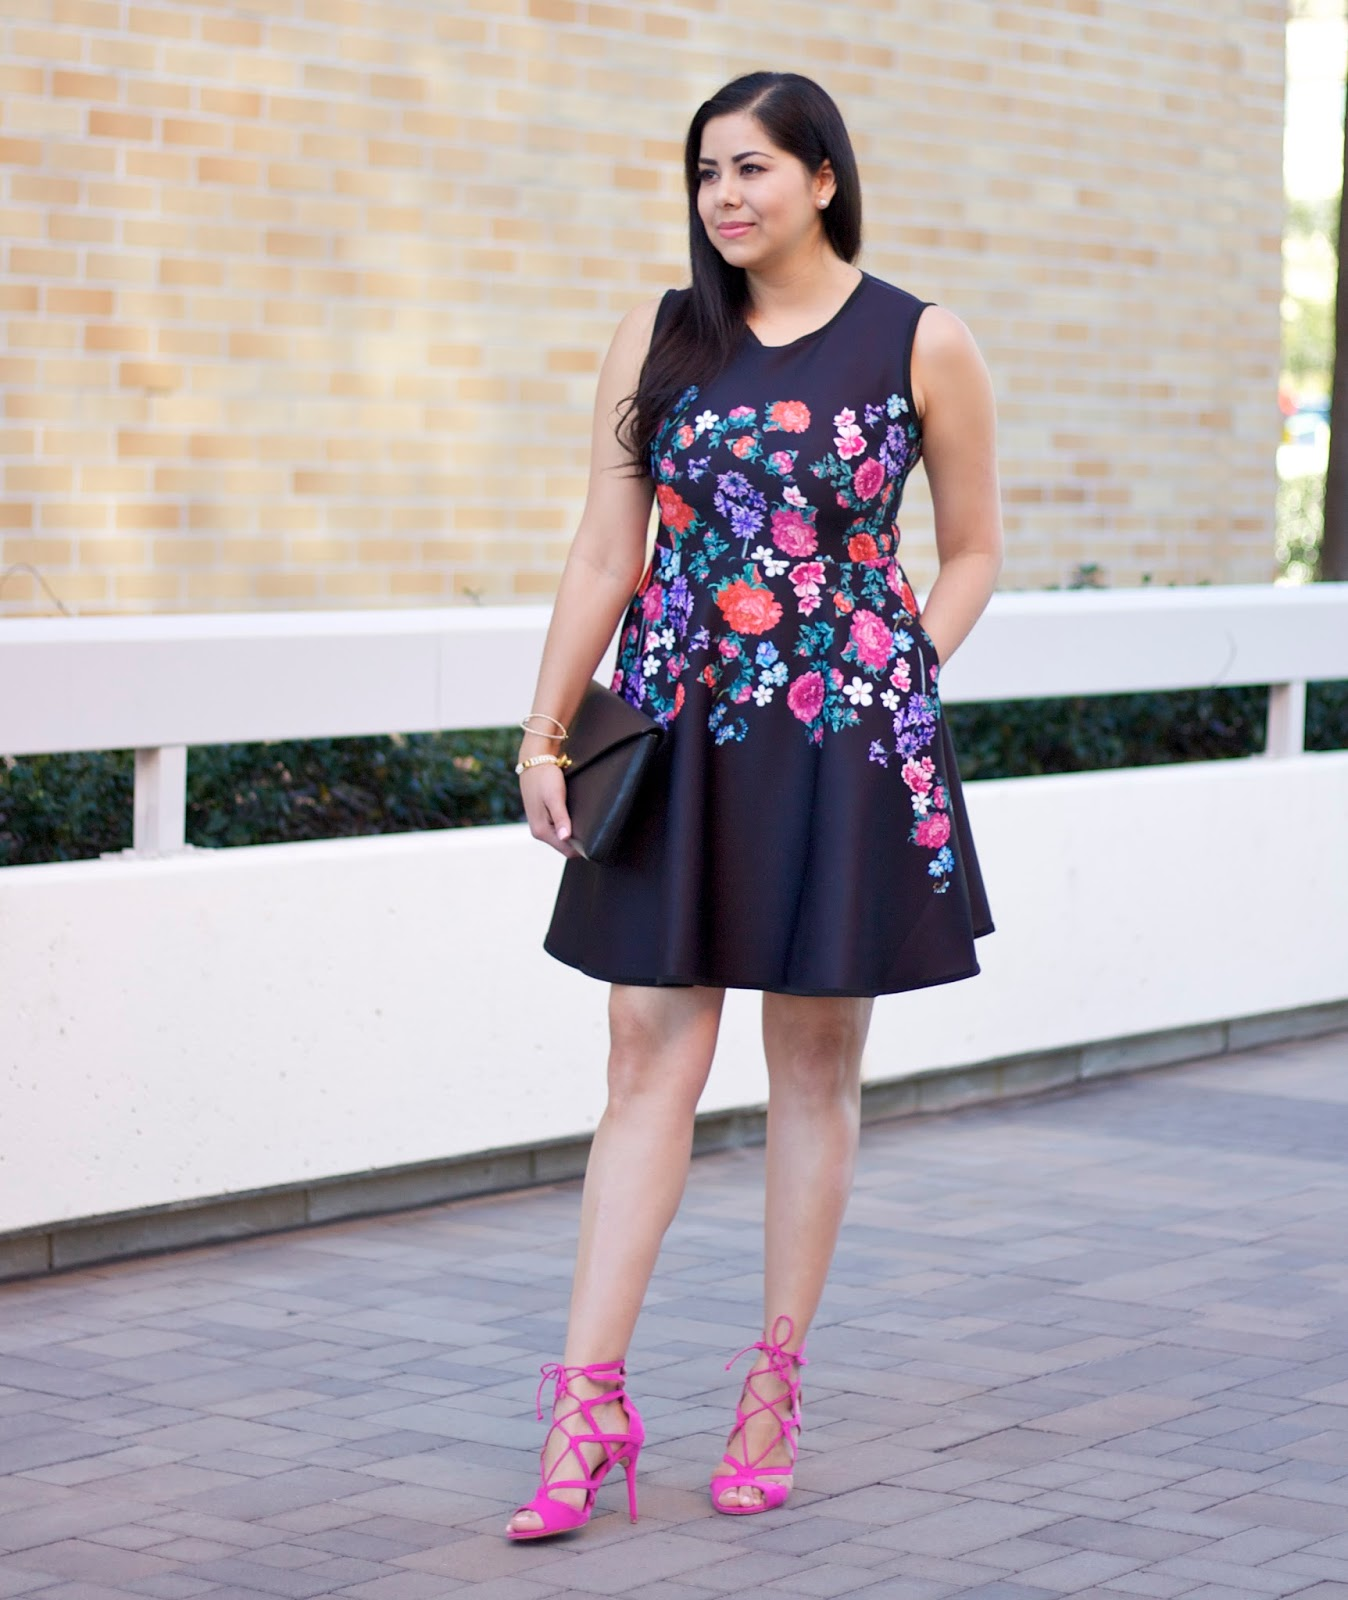 chicwish floral dress, san diego style blogger, san diego fashion, spring 2016 fashion